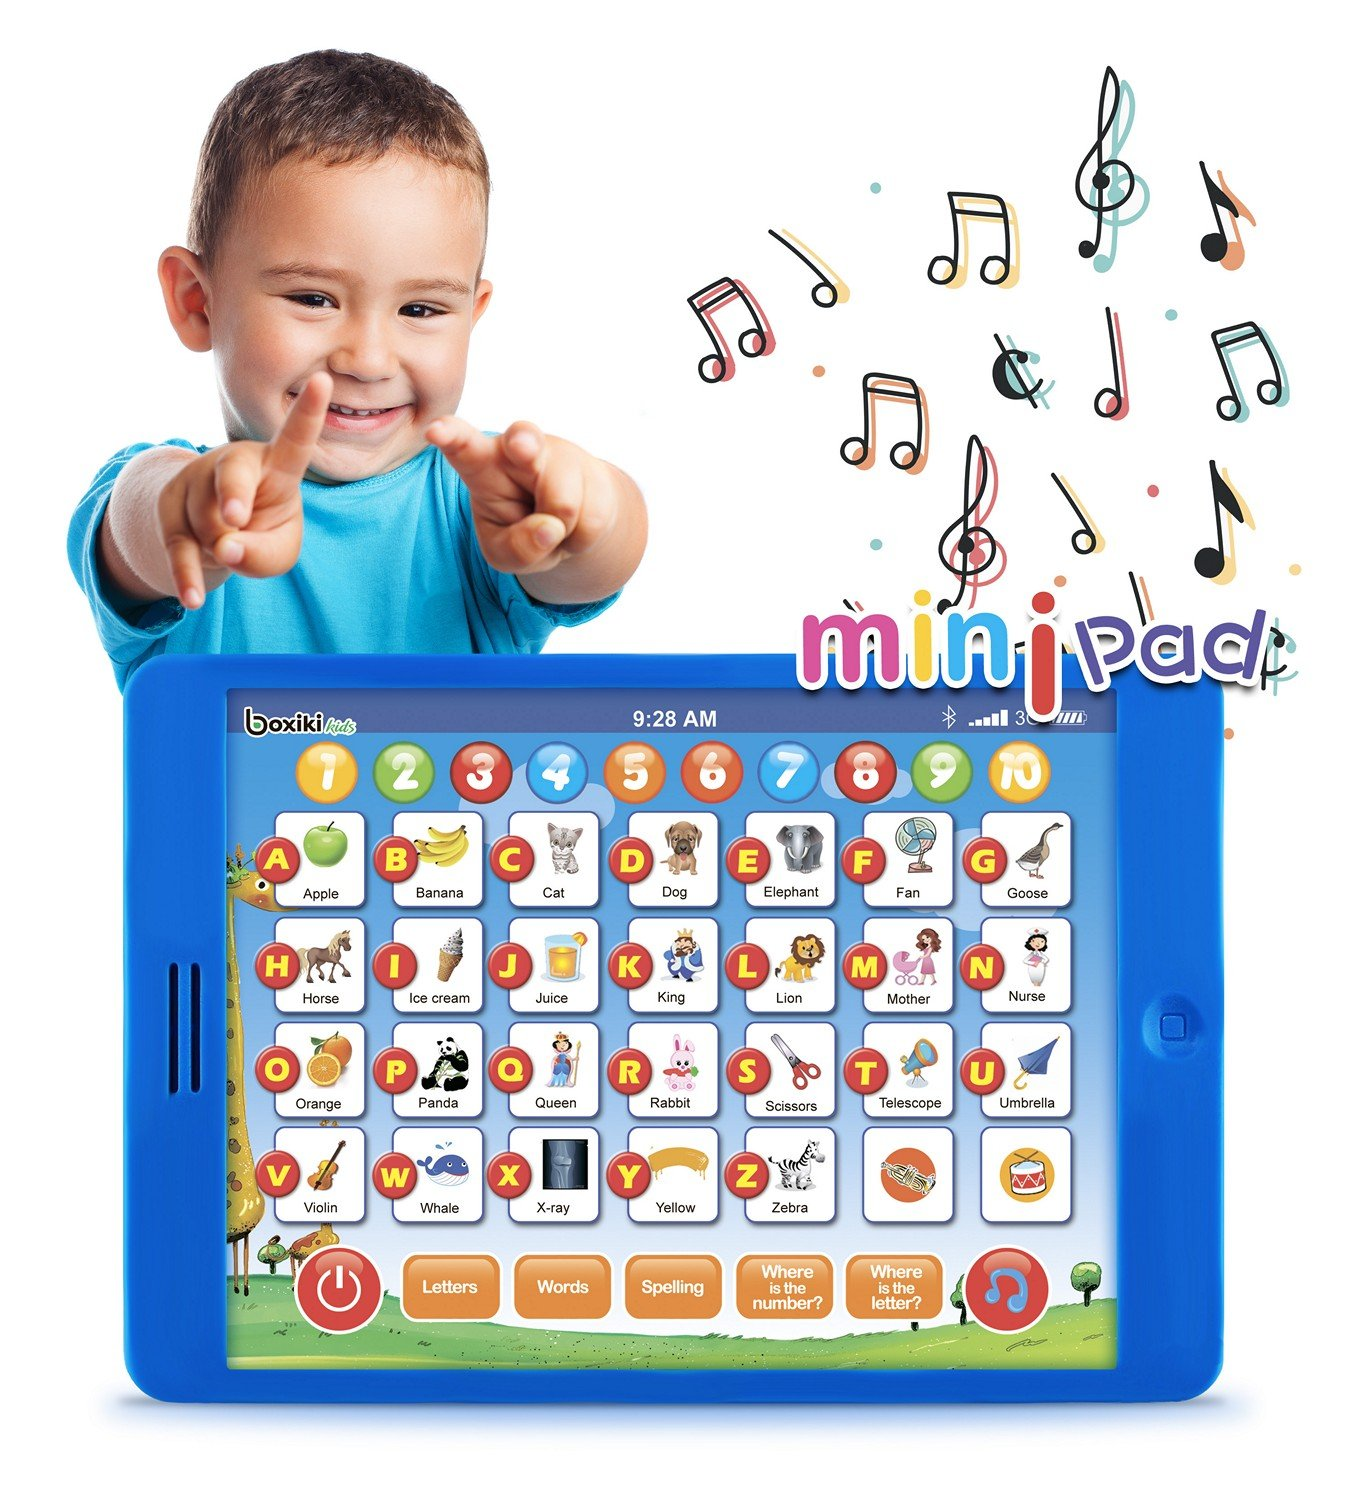 Boxiki kids Learning Pad Fun Kids Tablet with 6 Toddler Learning Games Early Child Development Toy for Number Learning, Learning ABCs, Spelling, ''Where is?'' Game, Melodies. Educational Toy by Boxiki kids